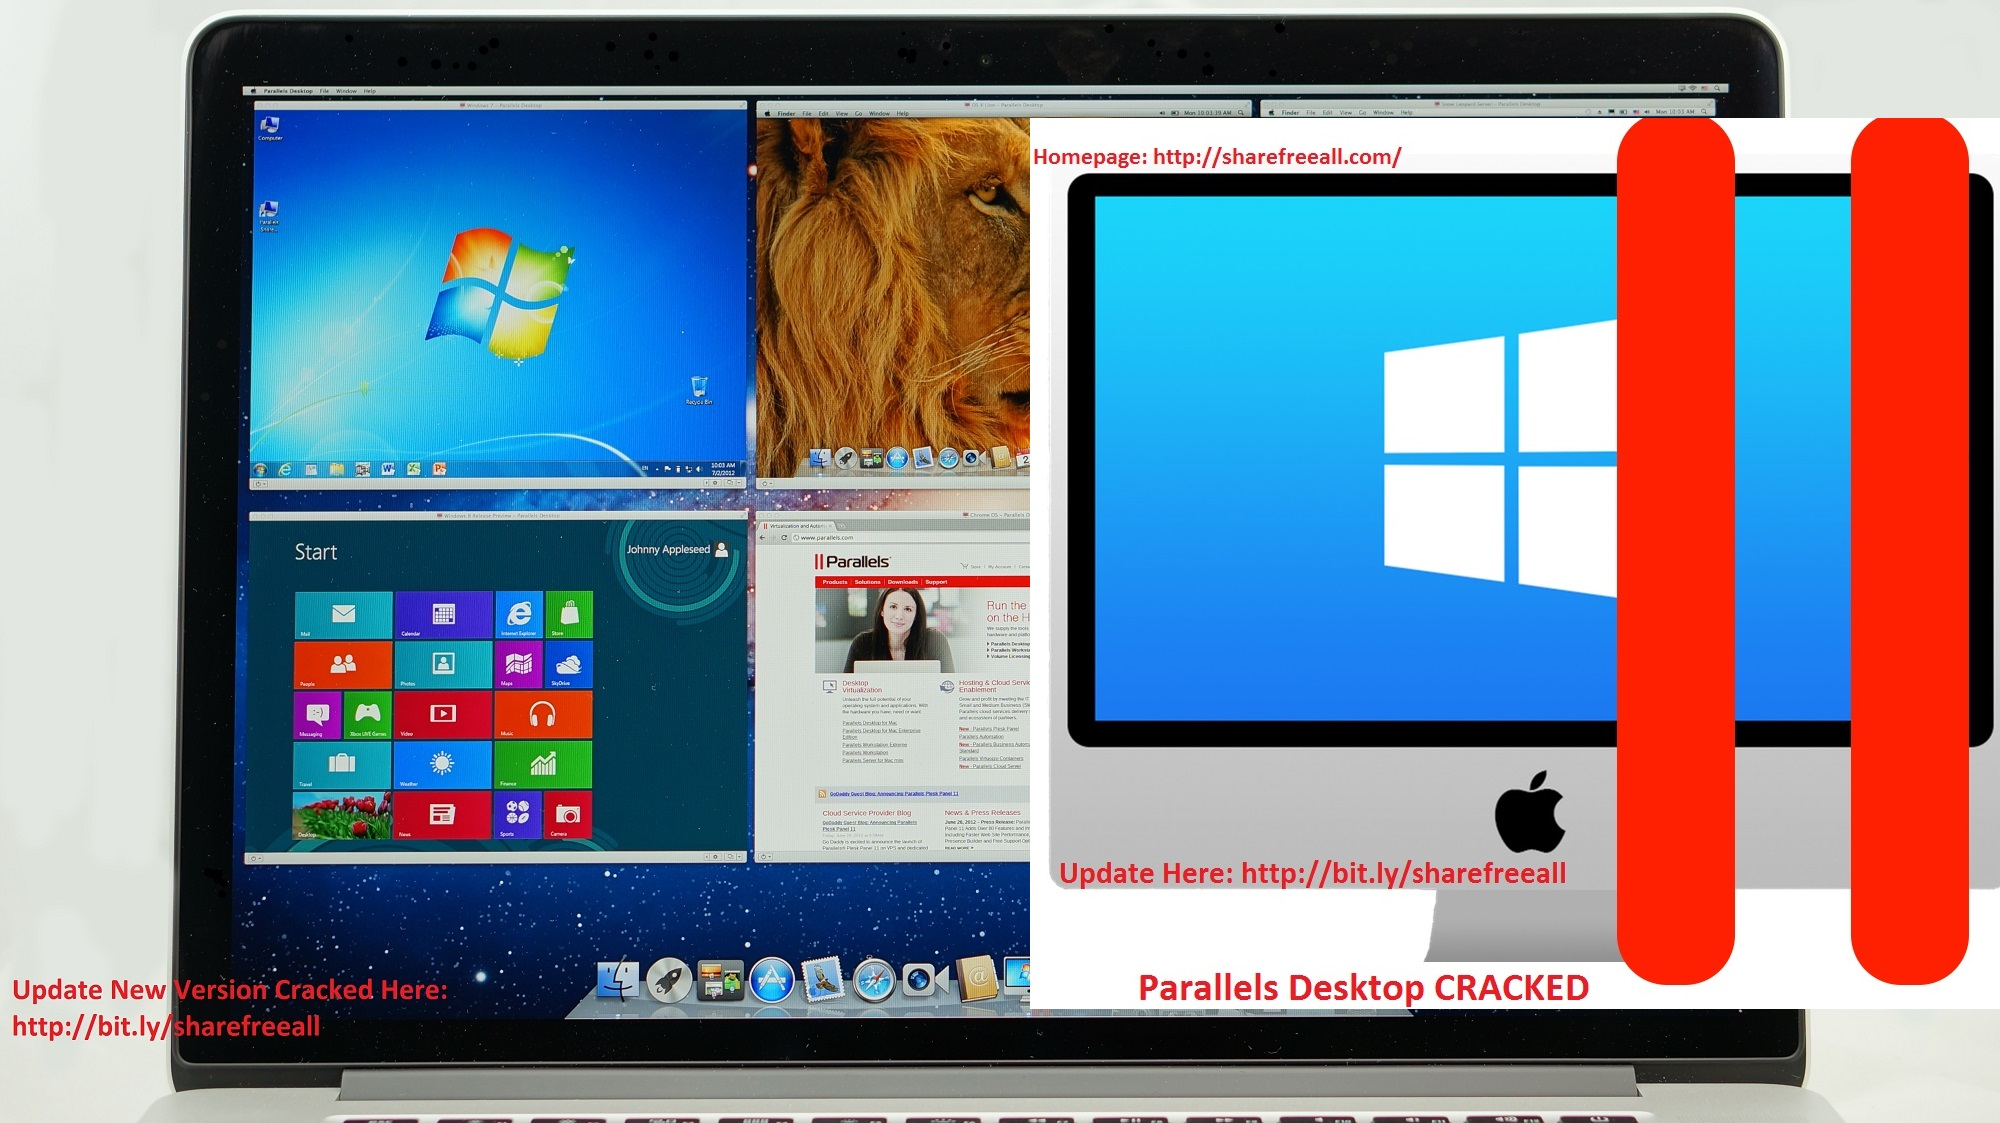 Download videos from the internet parallels toolbox for windows.